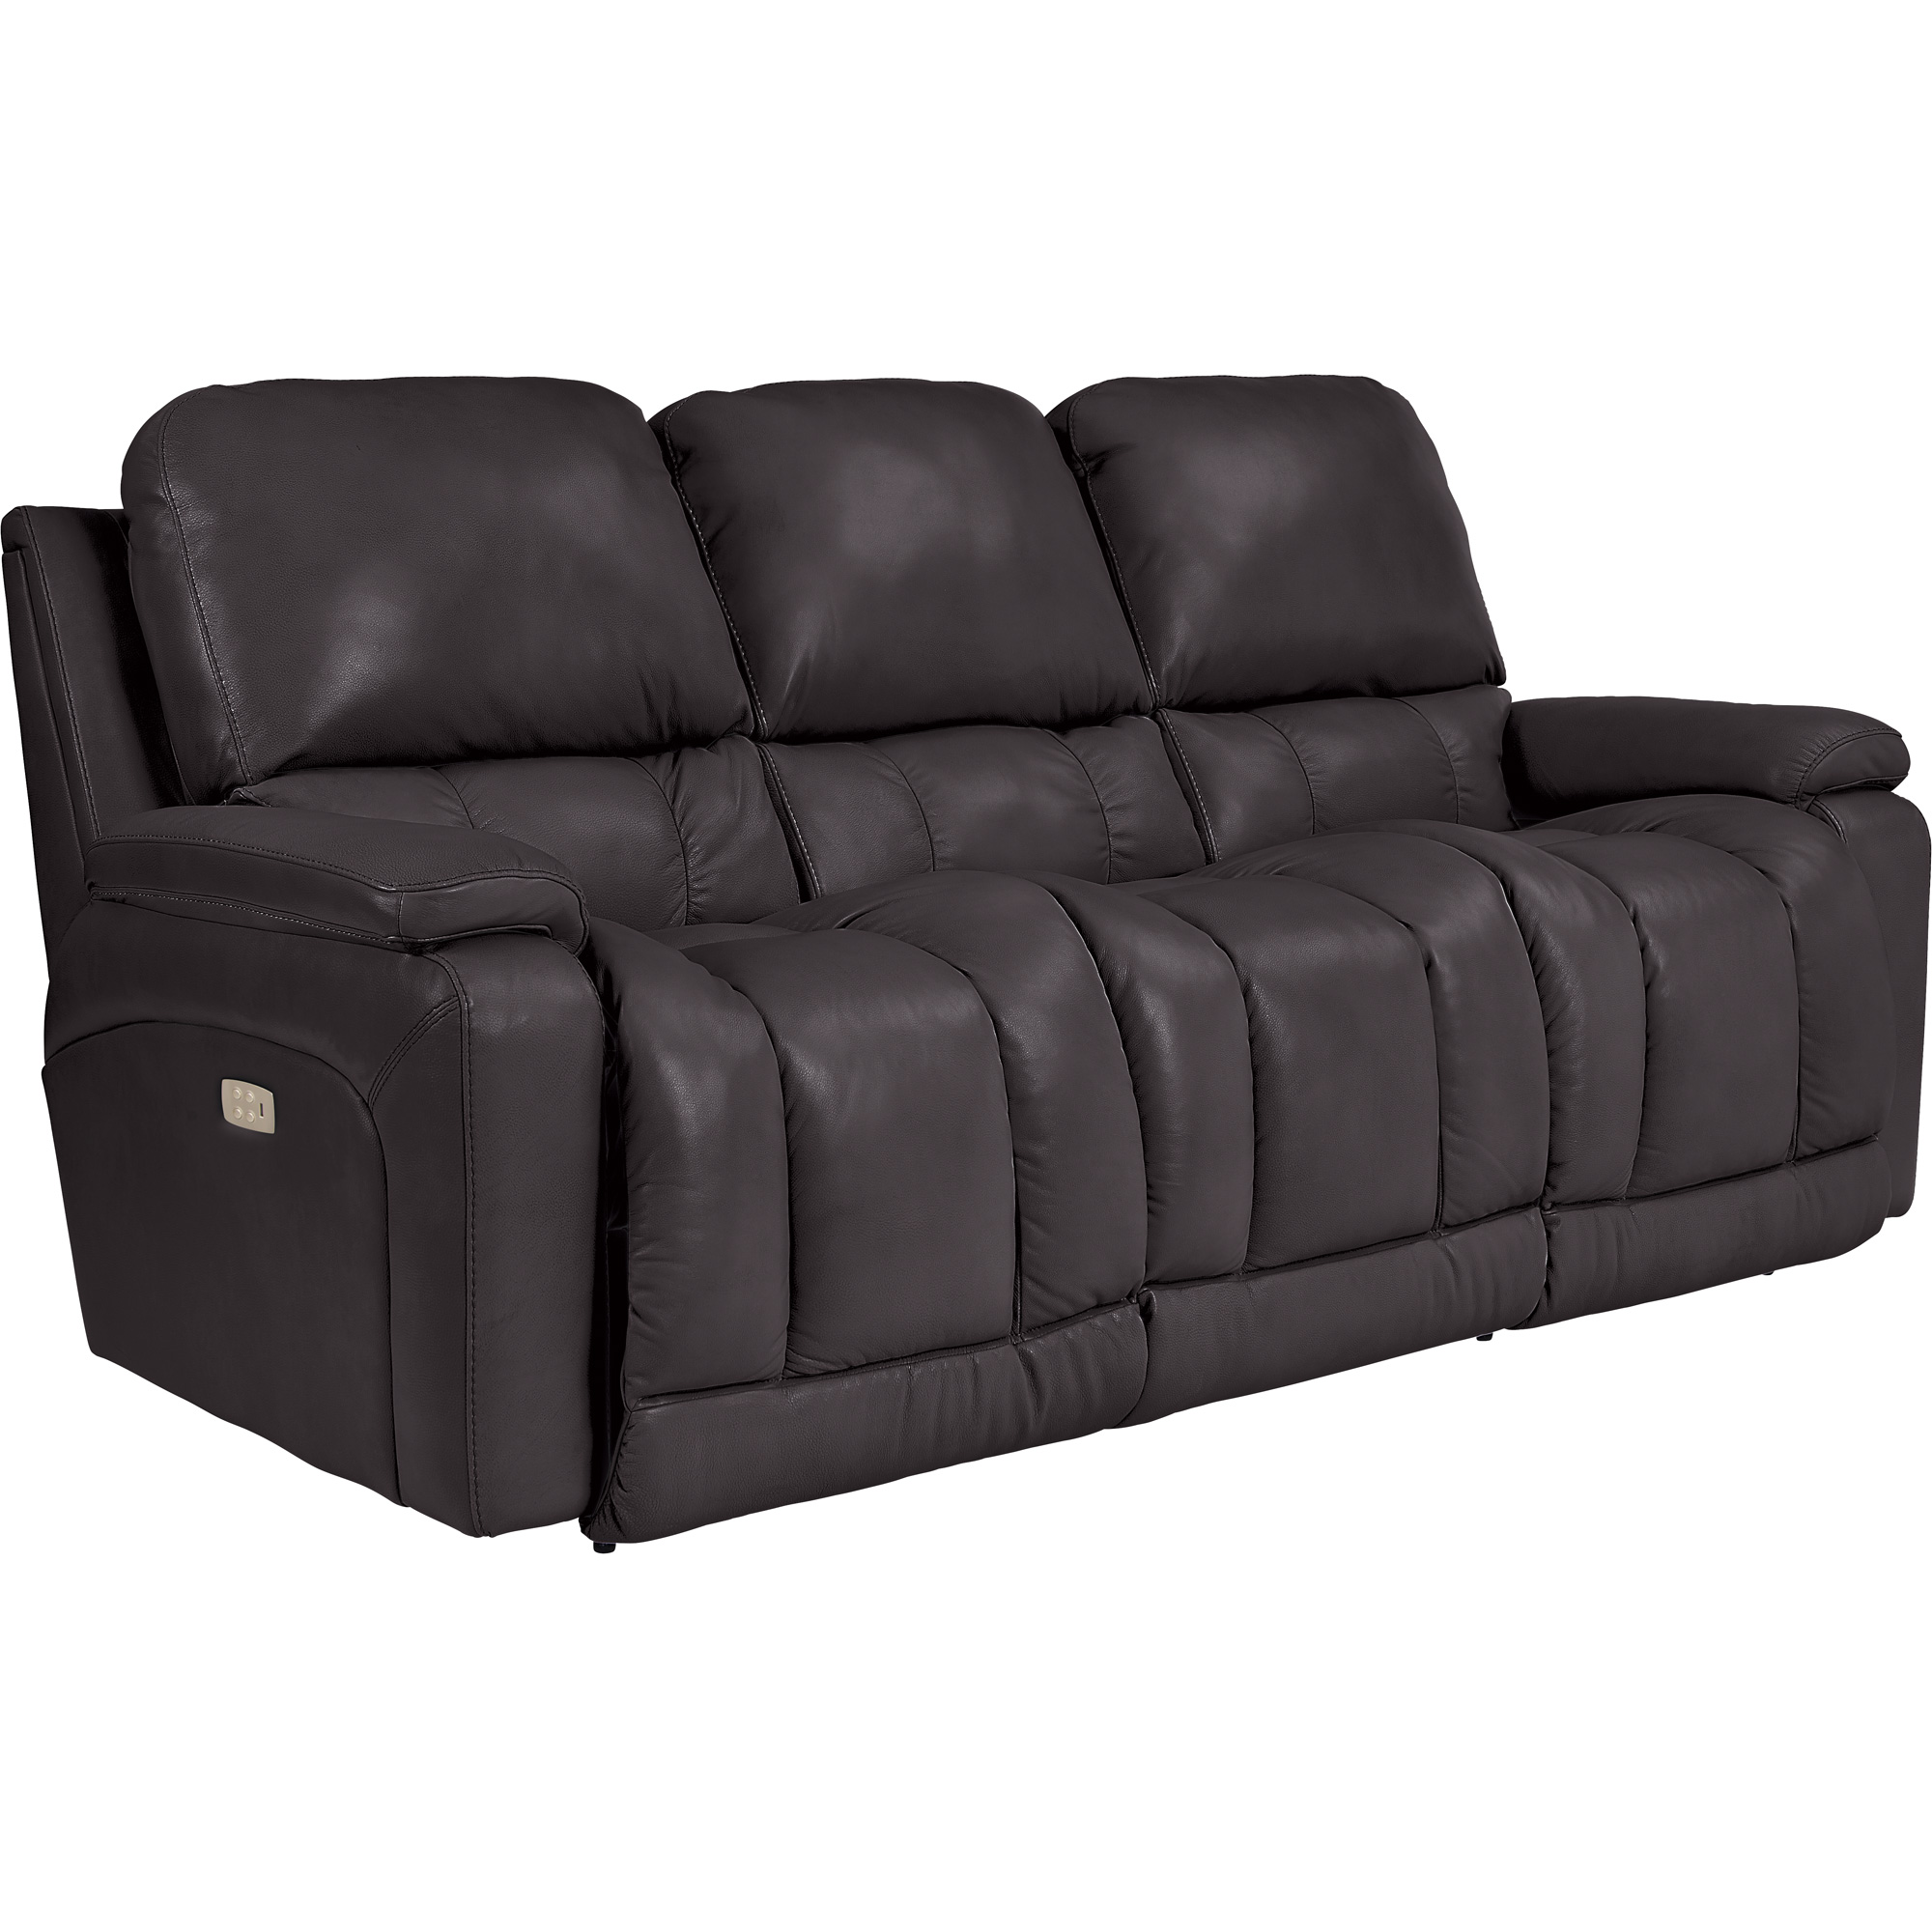 La-Z-Boy | Greyson Chocolate Power Plus Reclining Sofa